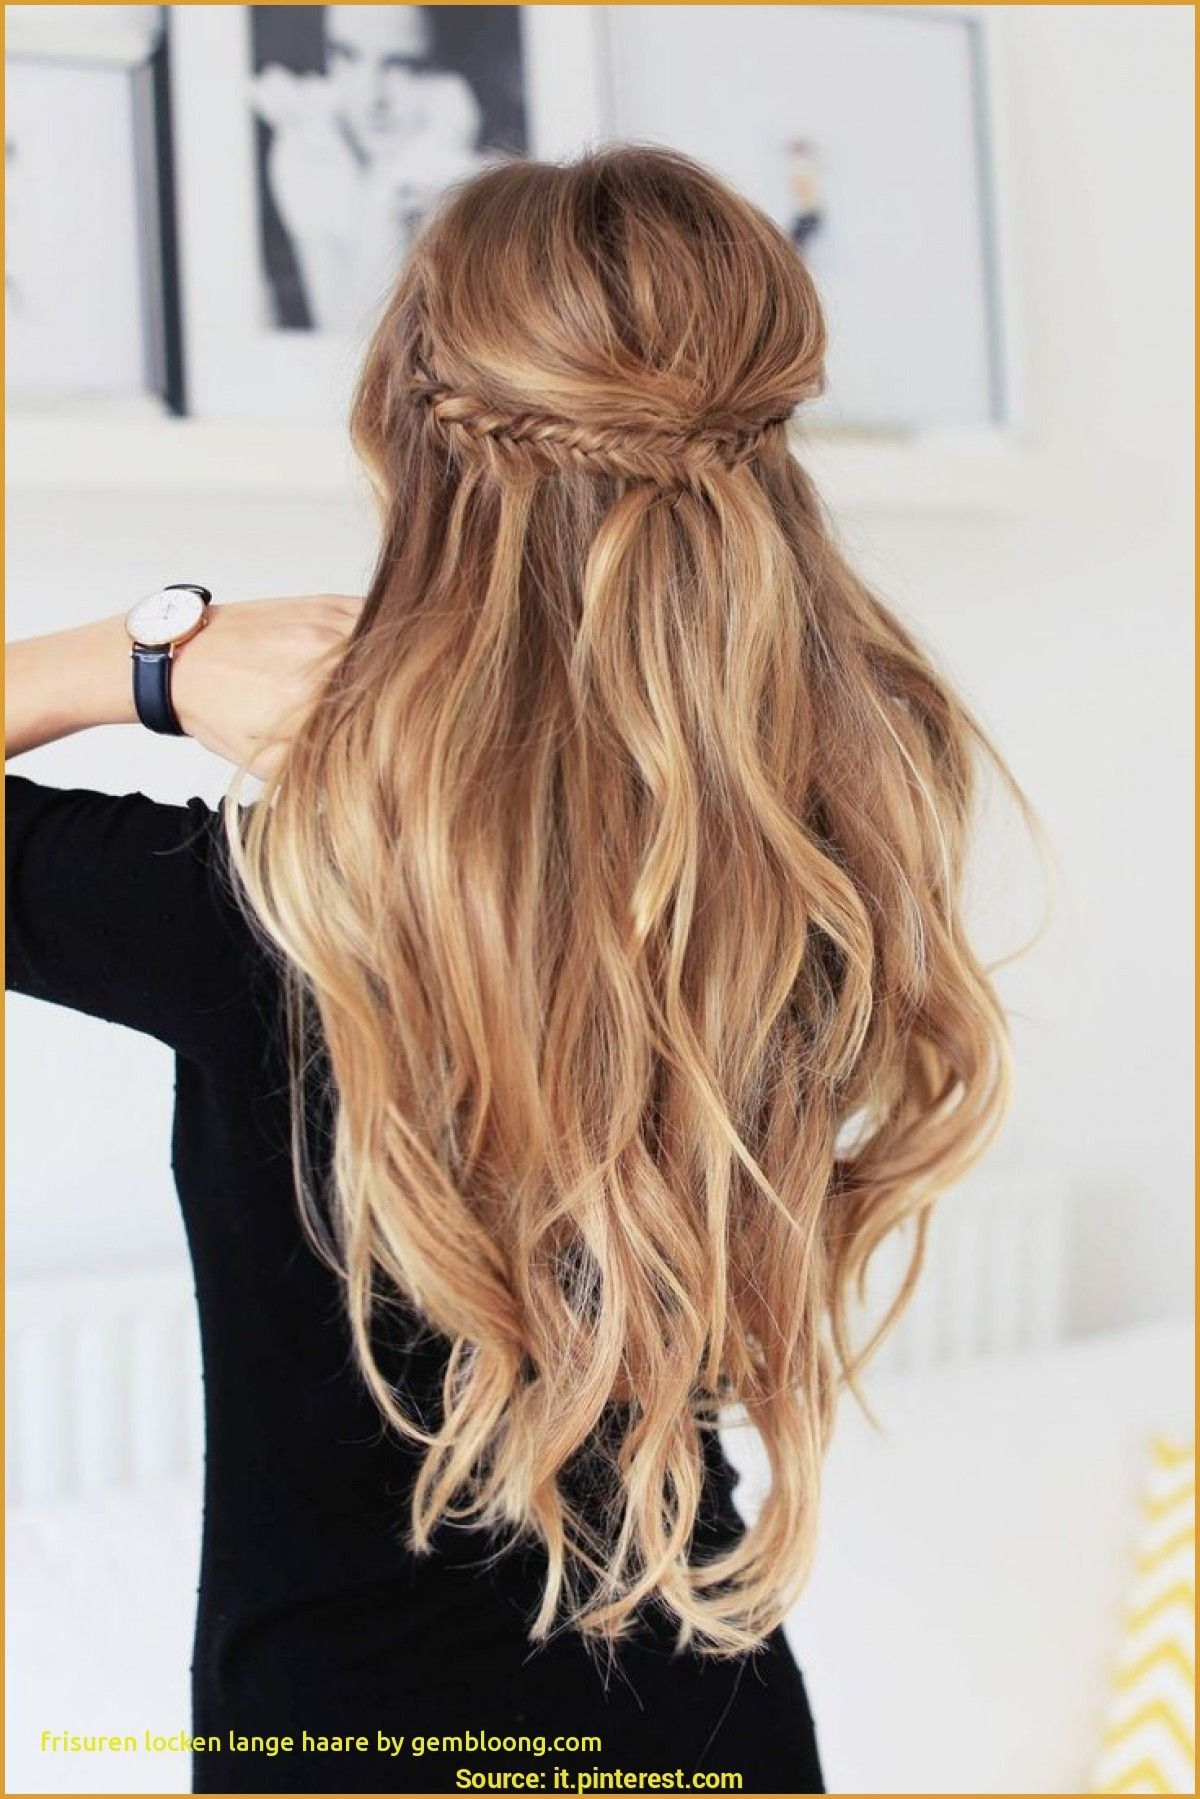 Frisuren Lange Haare Mit Locken Inspirational Frisuren Locken Lange Haare Einfache Frisuren Hair Styles Long Hair Styles Hairstyle